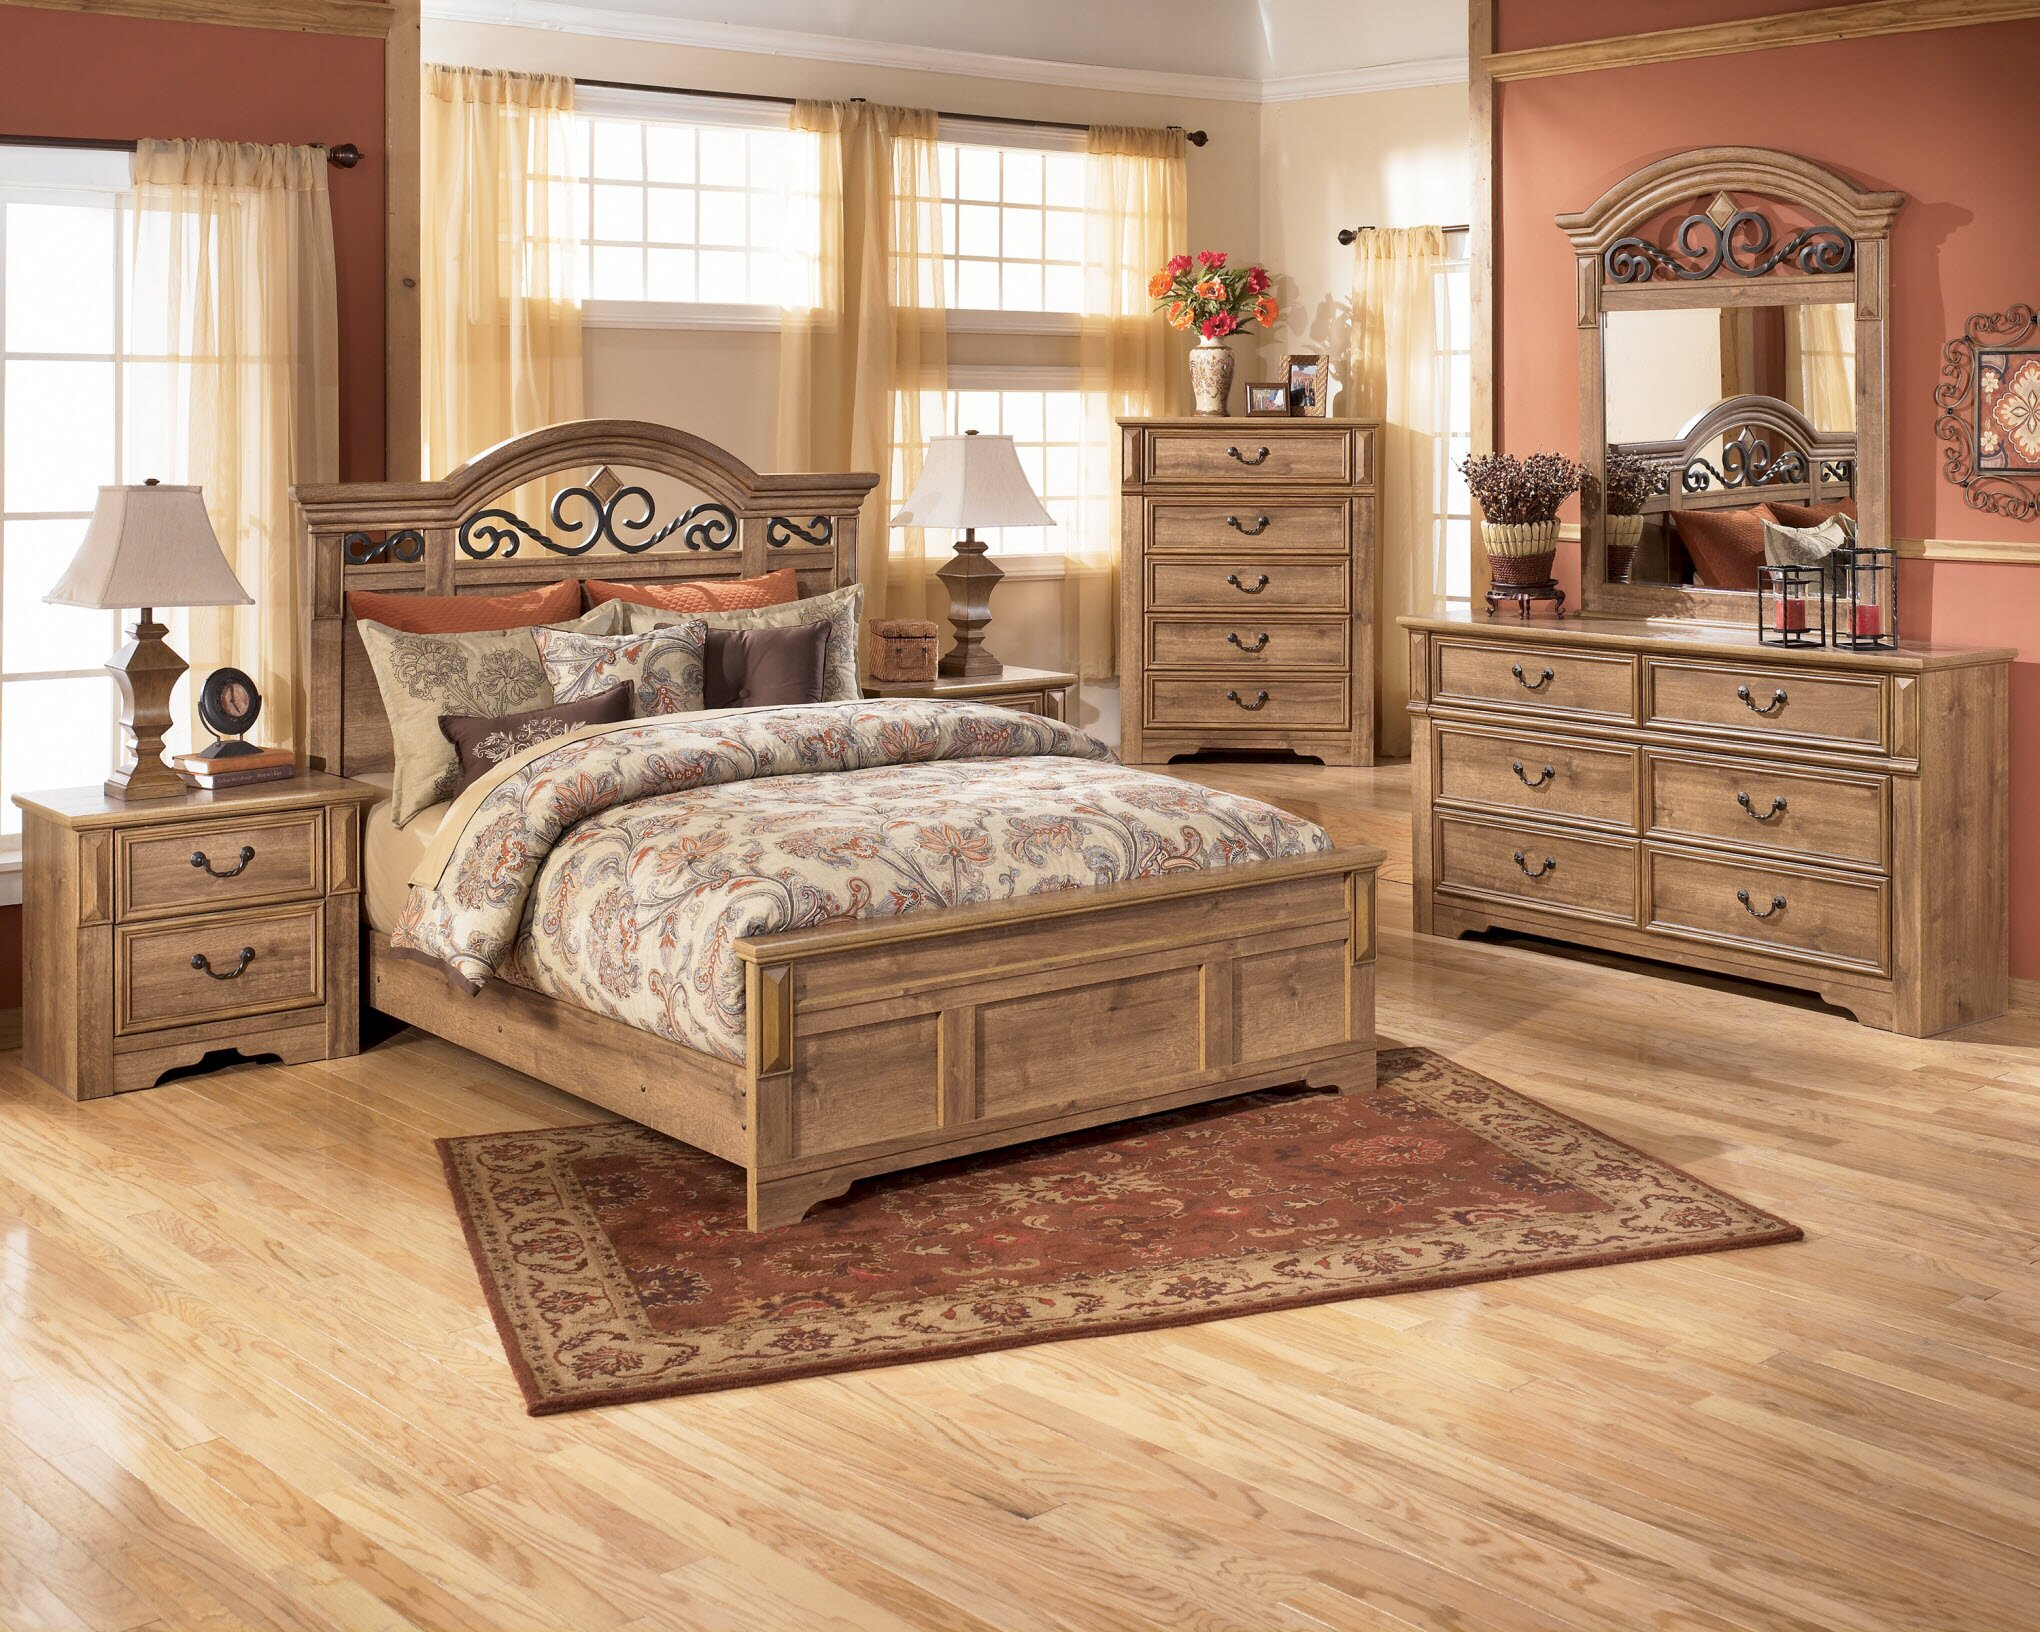 Bedroom Set Restoration Hardware